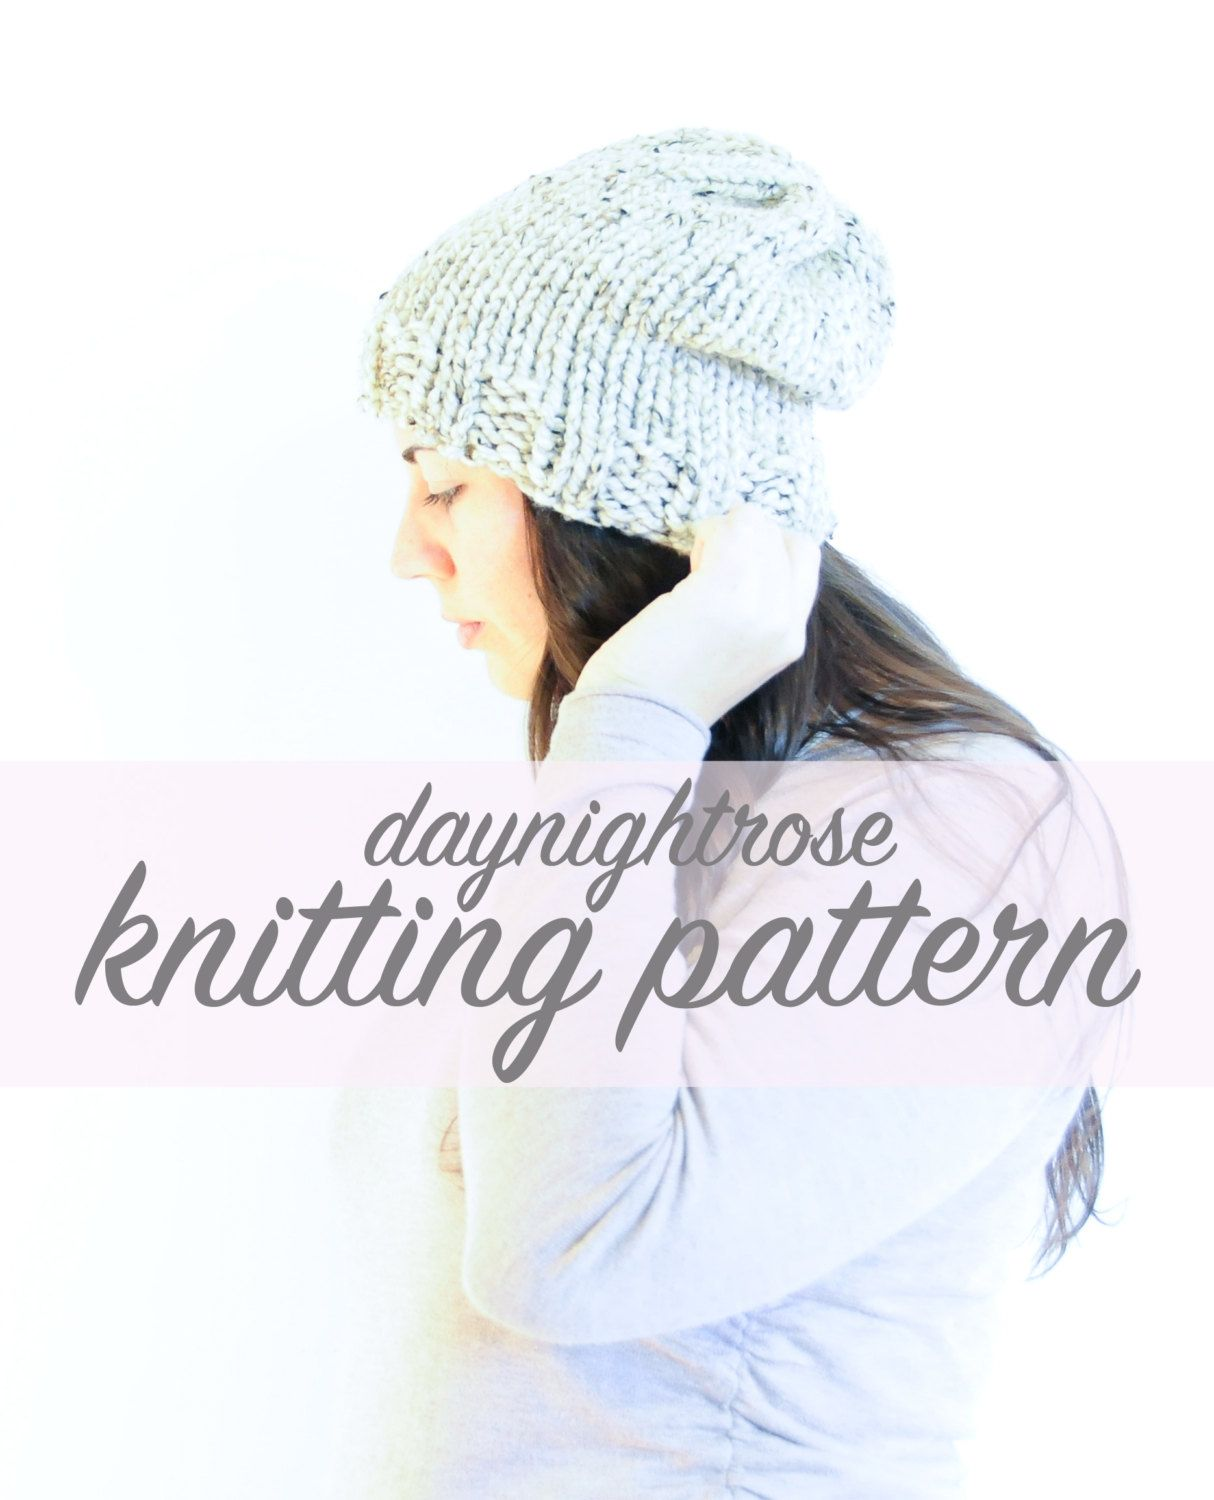 The Canmore Slouchy Toque - Knitting Pattern by daynightrose on Etsy